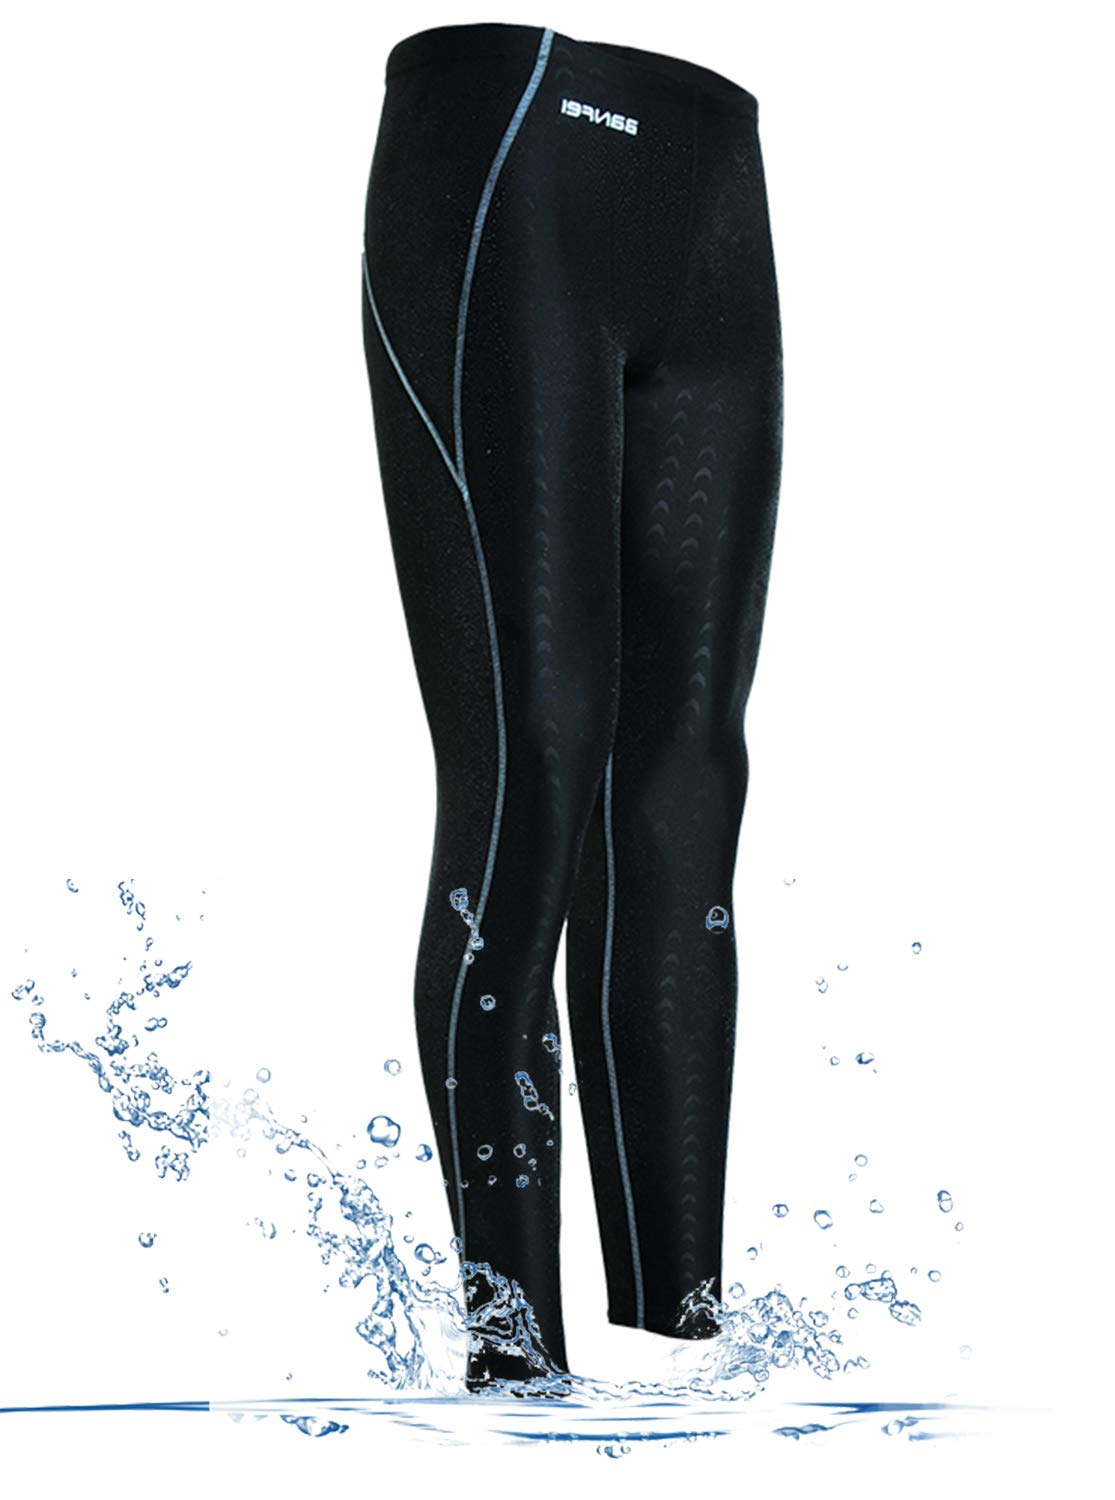 GEEK LIGHTING Womens UPF 50+ Surfing Skins Leggings Wetsuit Swim Long Pants (Black-Green, Medium) by GEEK LIGHTING